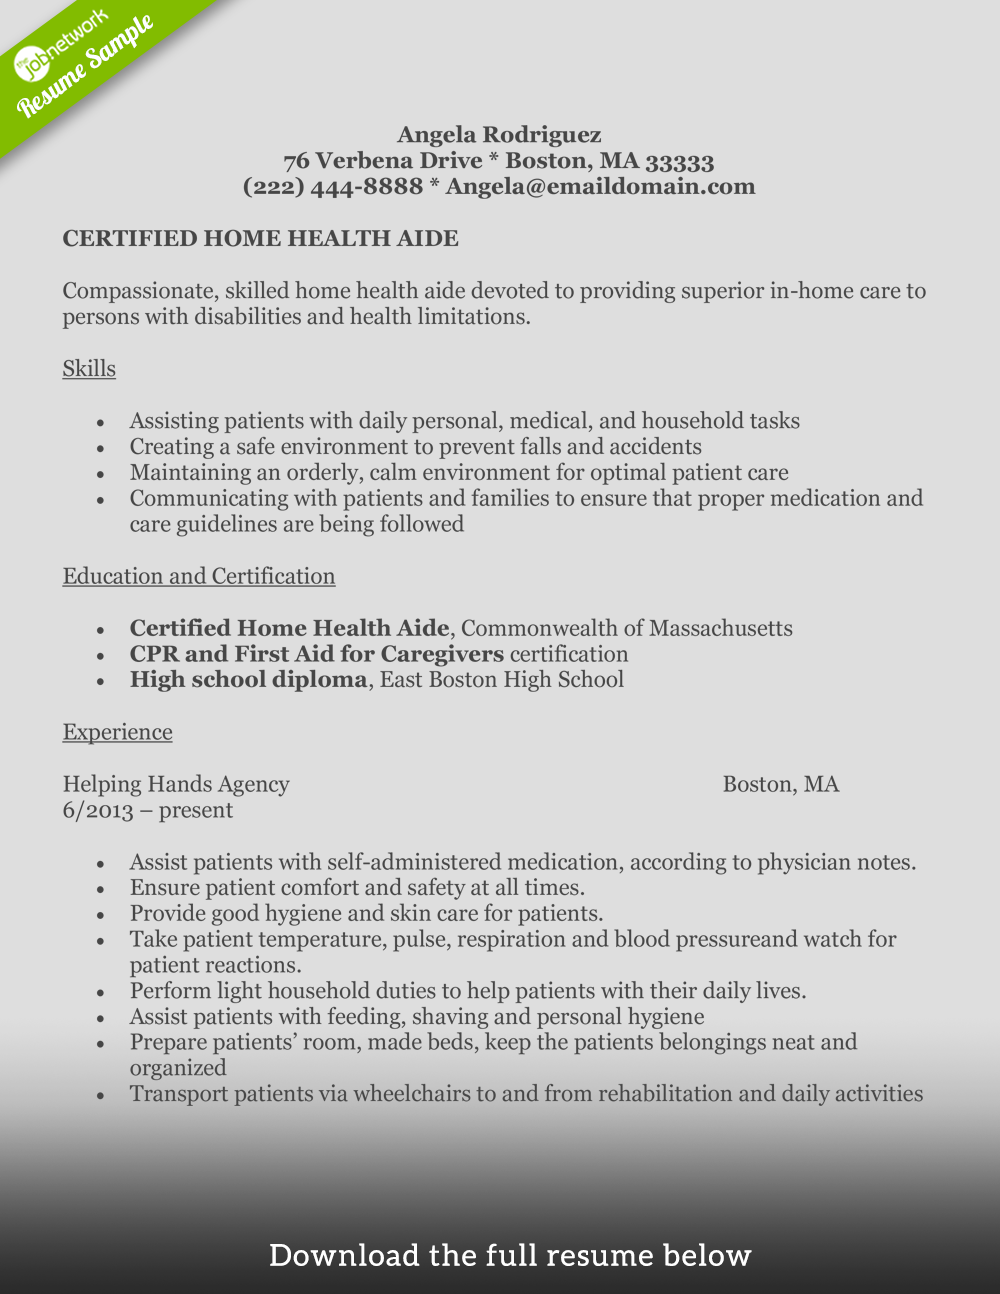 Home Health Aide Resume Certified  Health Care Resume